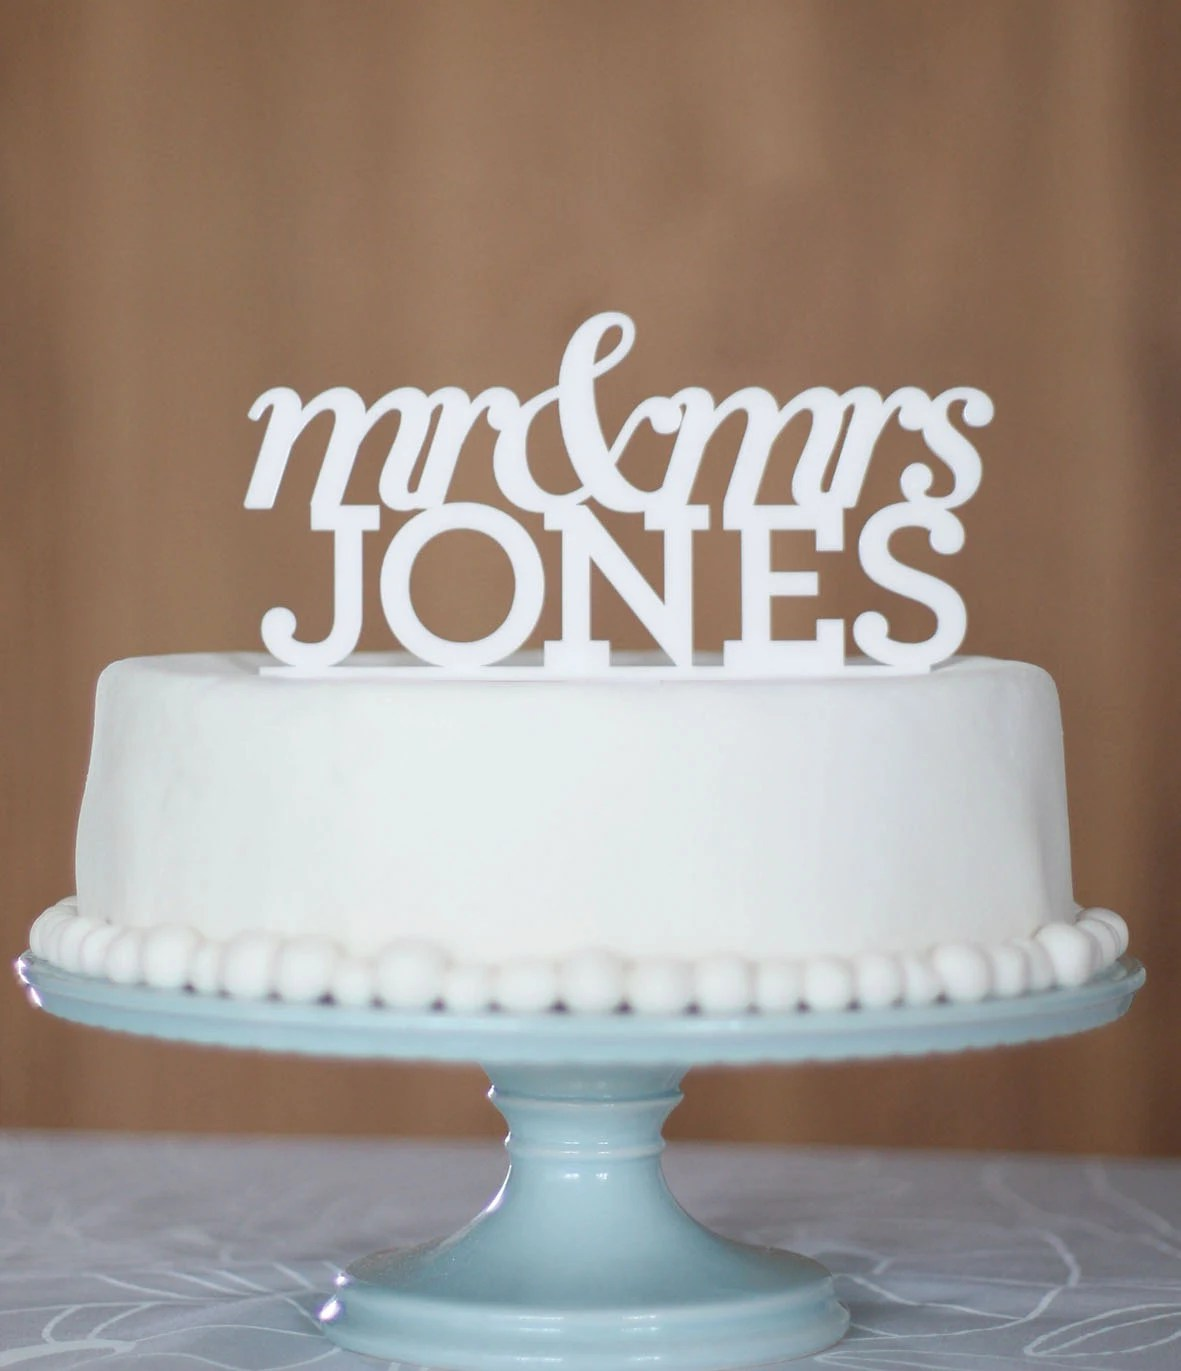 Custom wedding cake toppers - CommunicakeIt